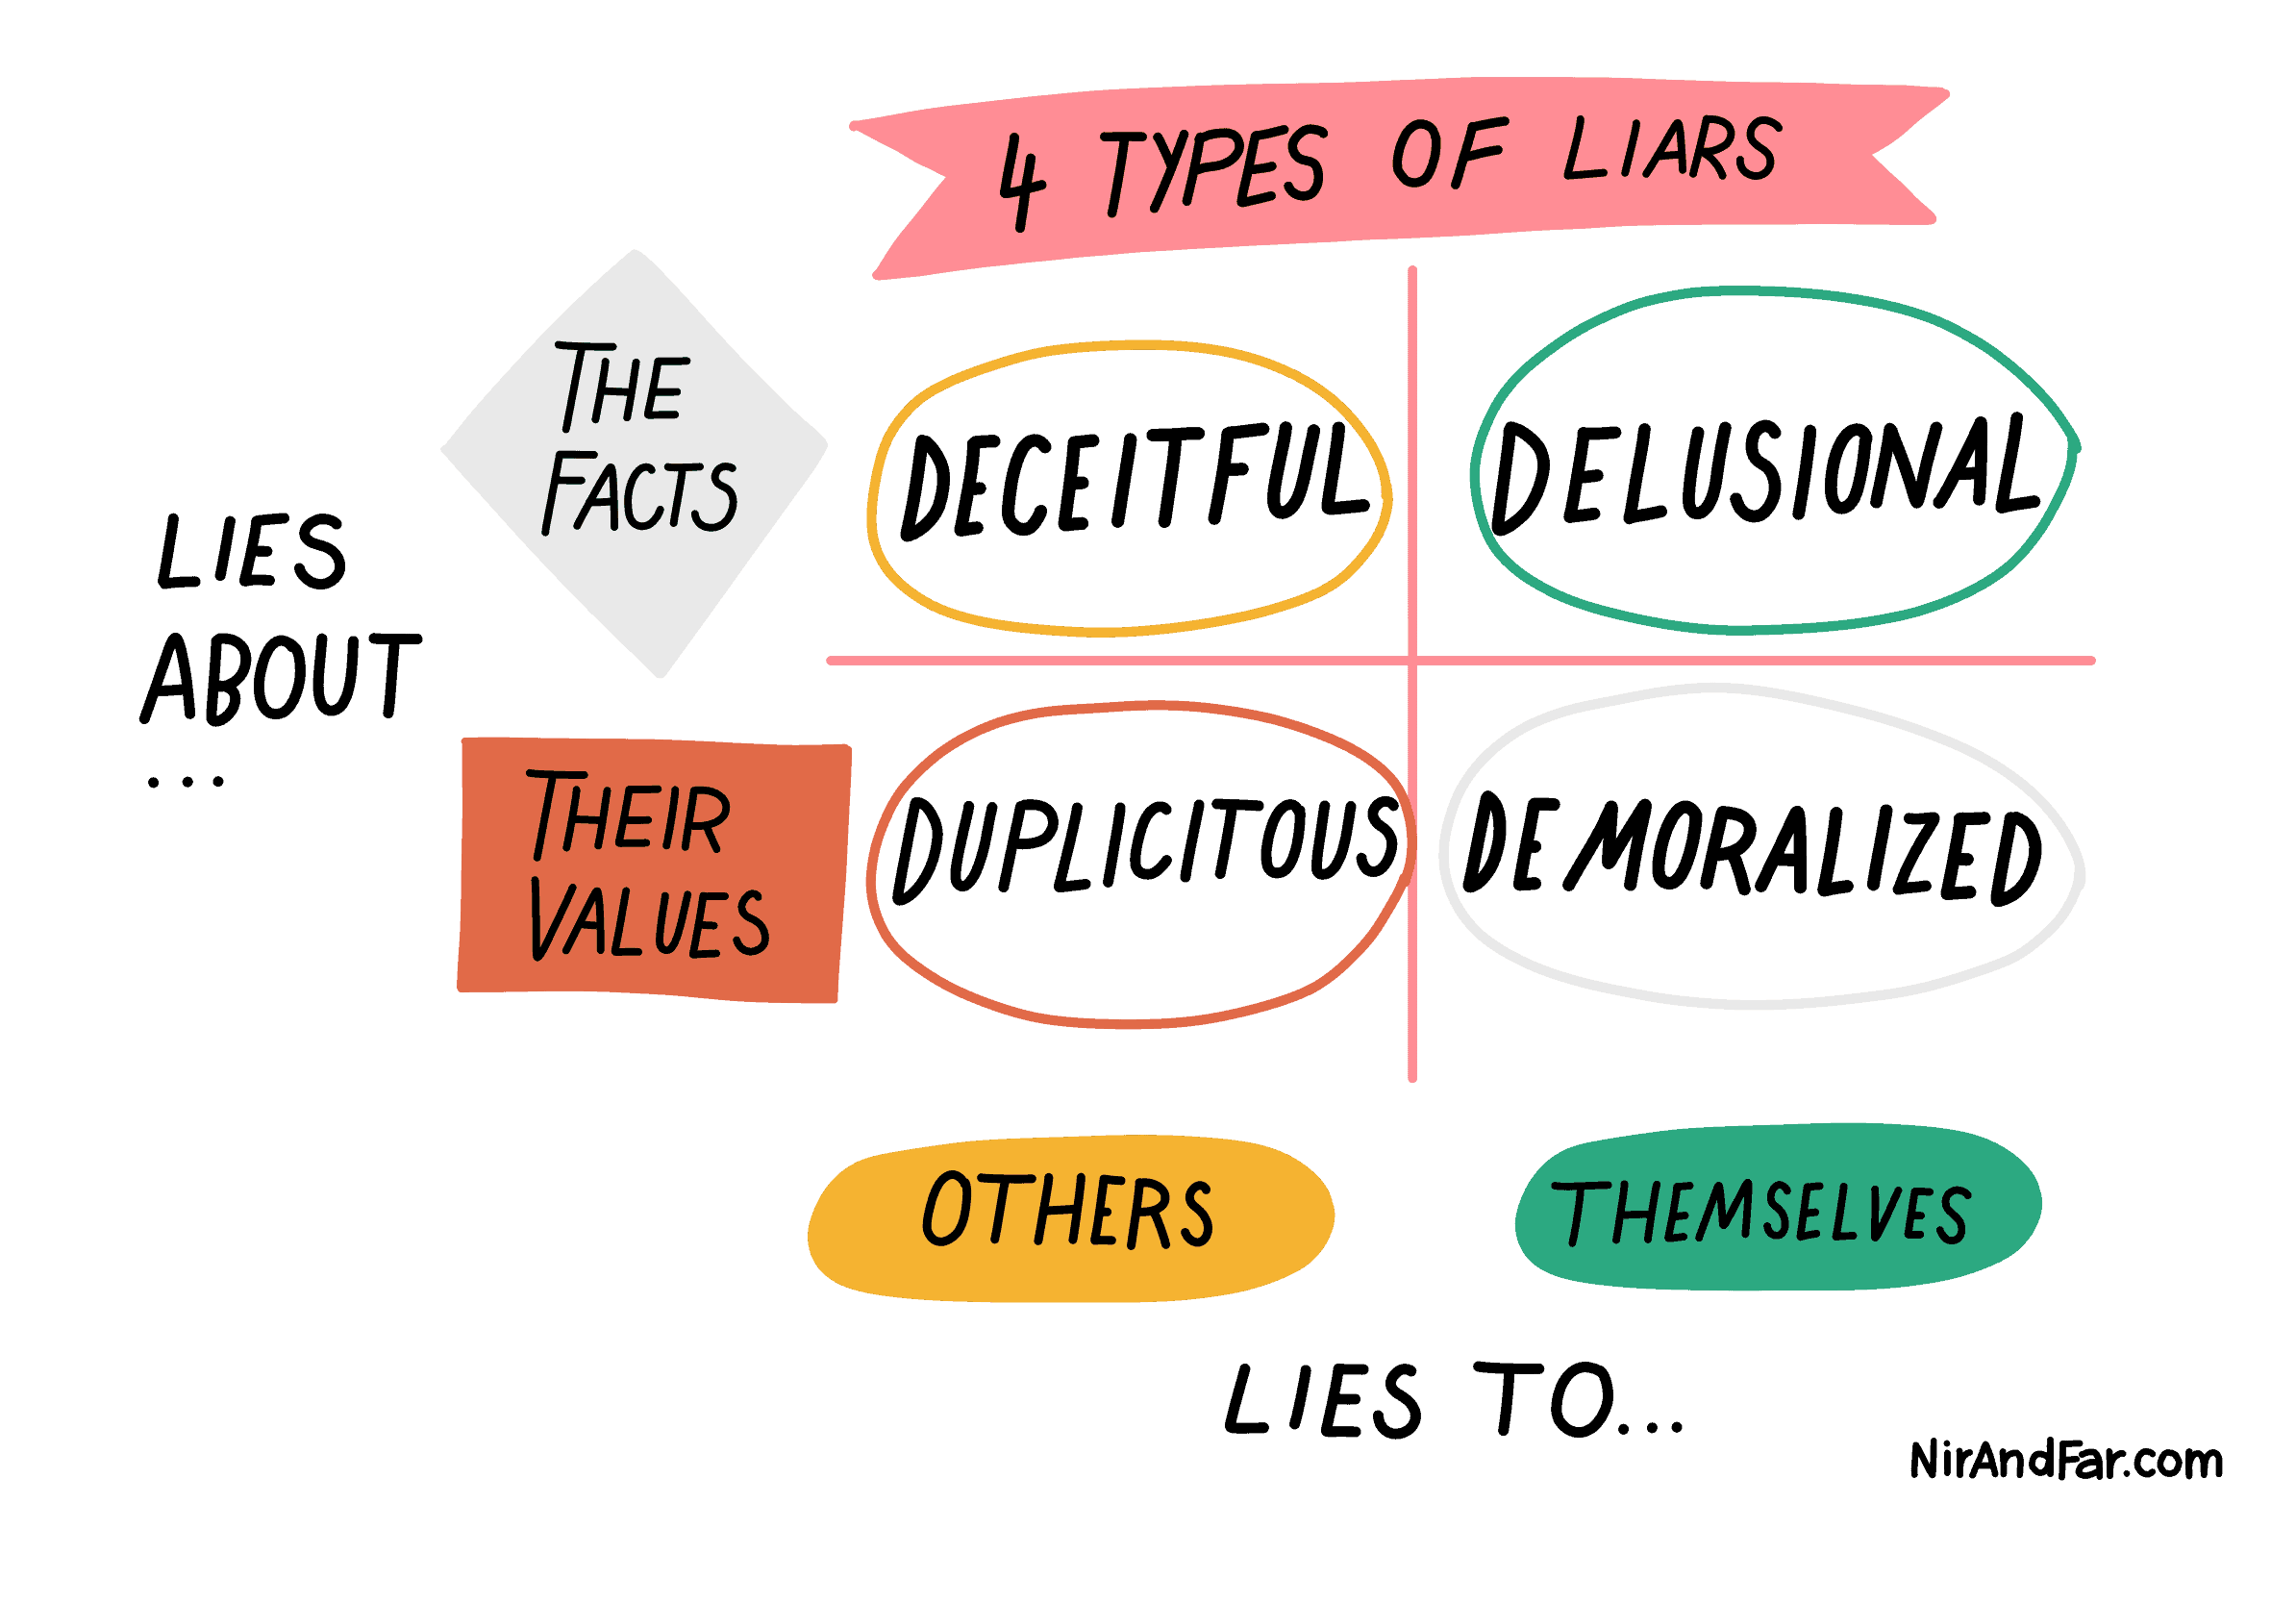 A graph of types of liars with axes for those that lie to themselves versus others and those that lie about the facts versus their values